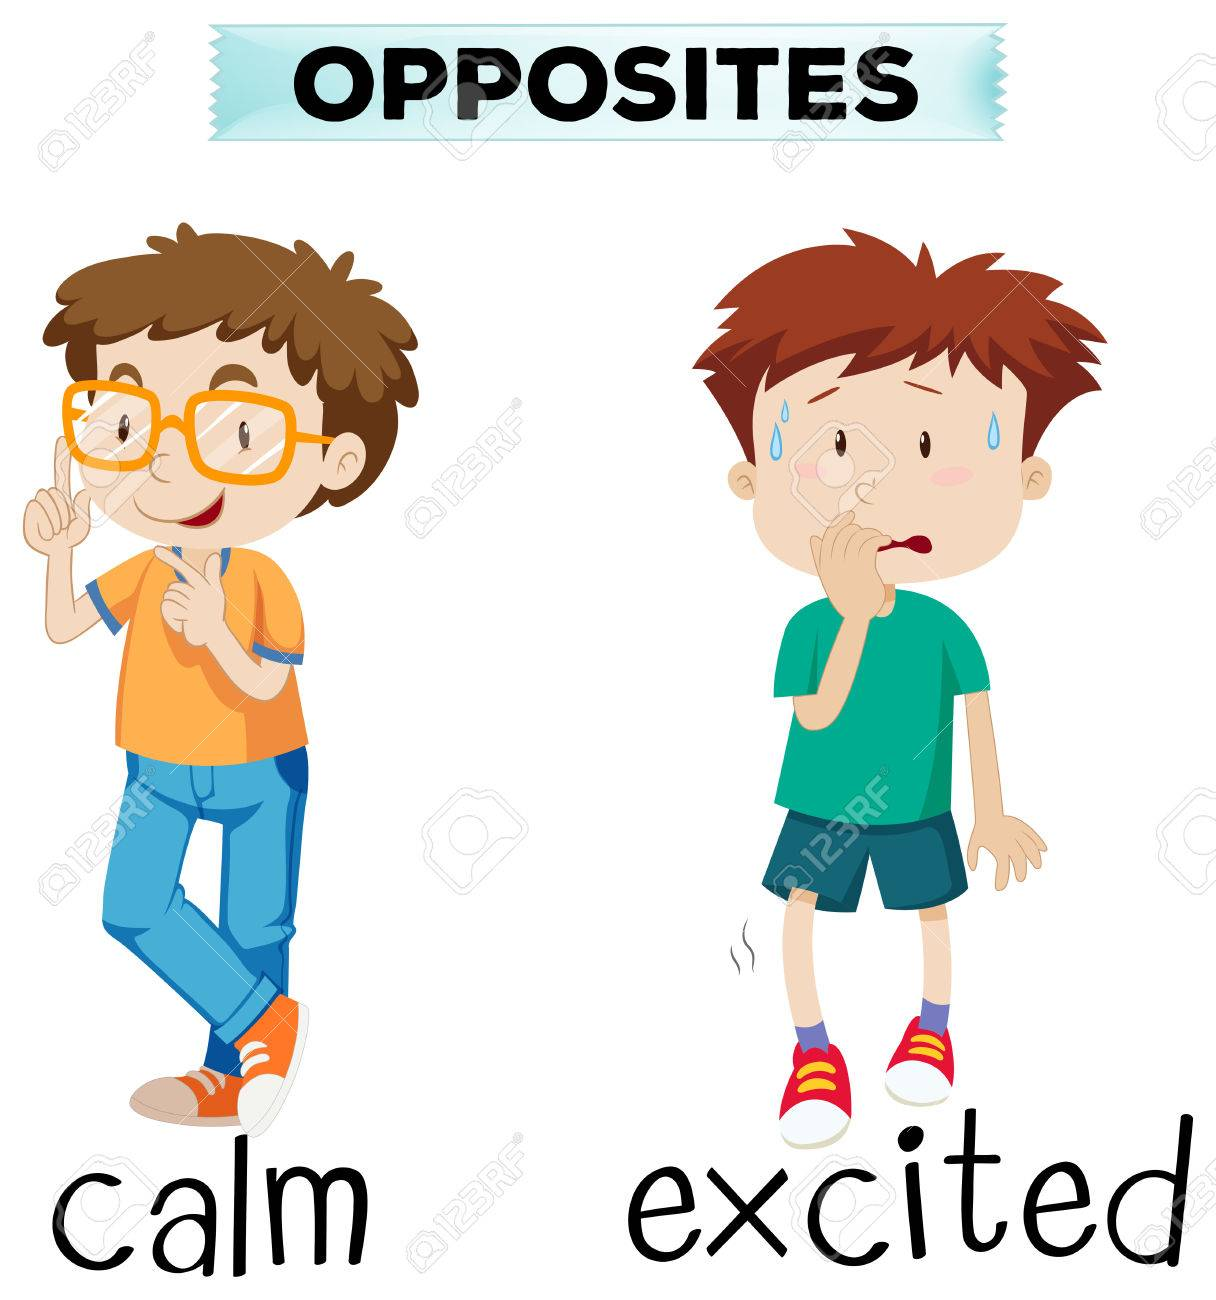 opposite words for calm and excited illustration royalty free